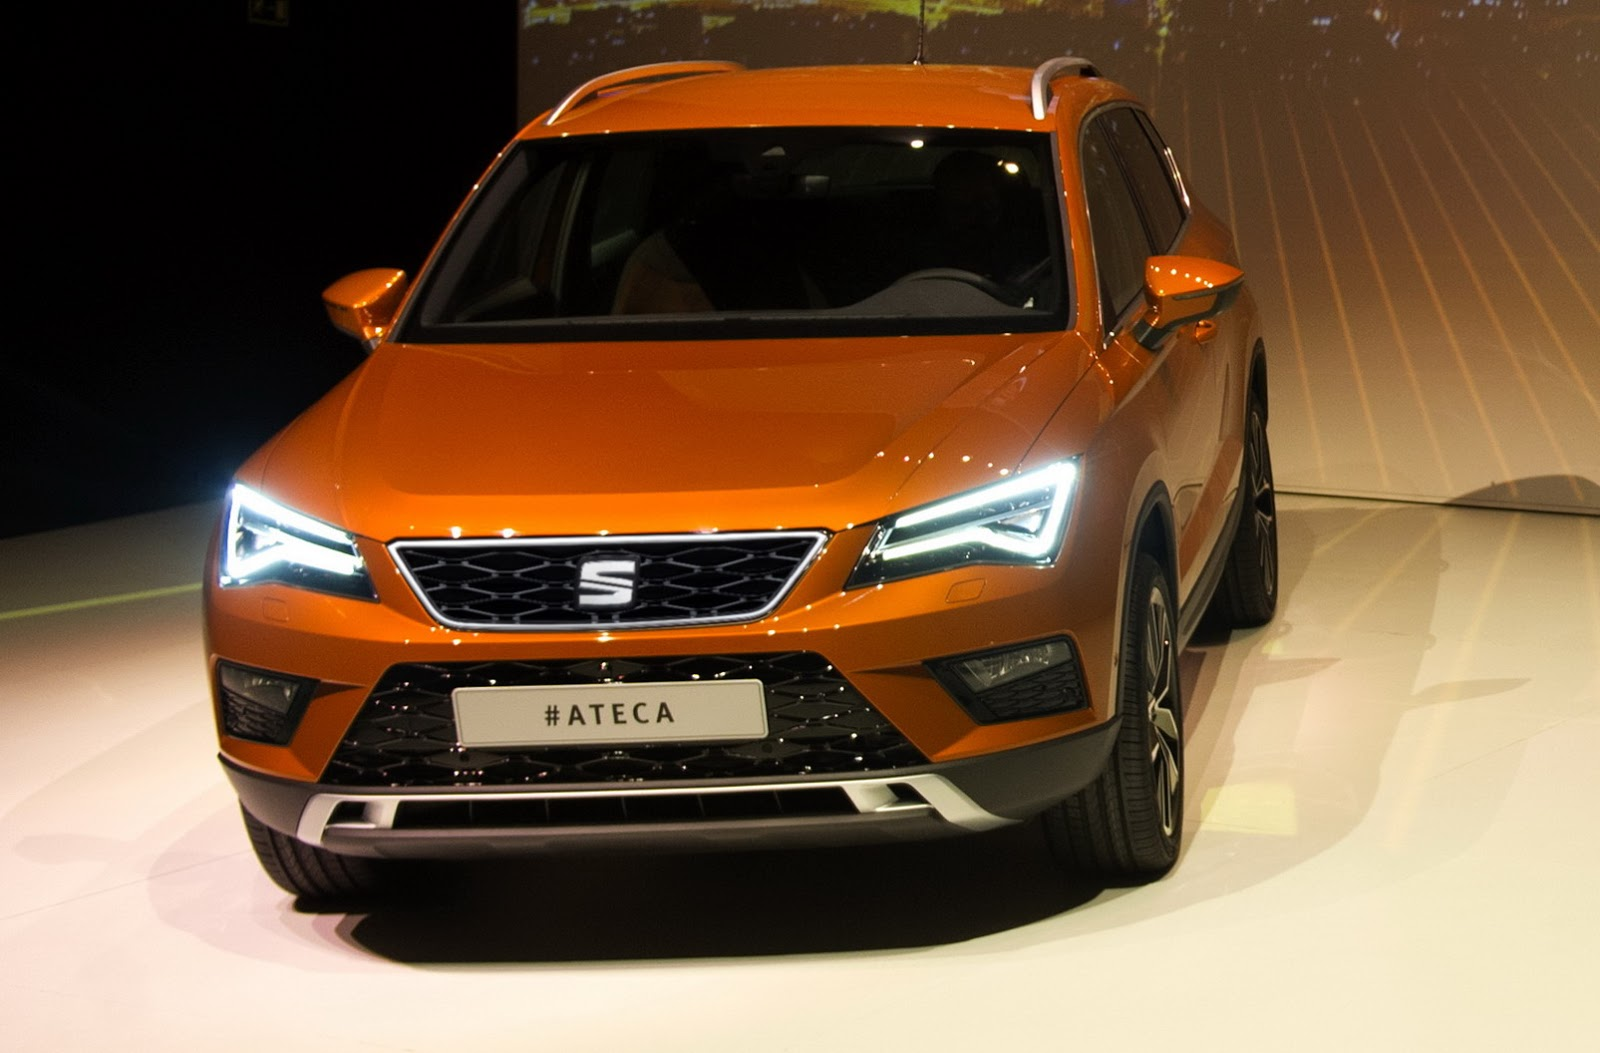 new seat ateca is spanish brand s foray into suvs w video carscoops. Black Bedroom Furniture Sets. Home Design Ideas